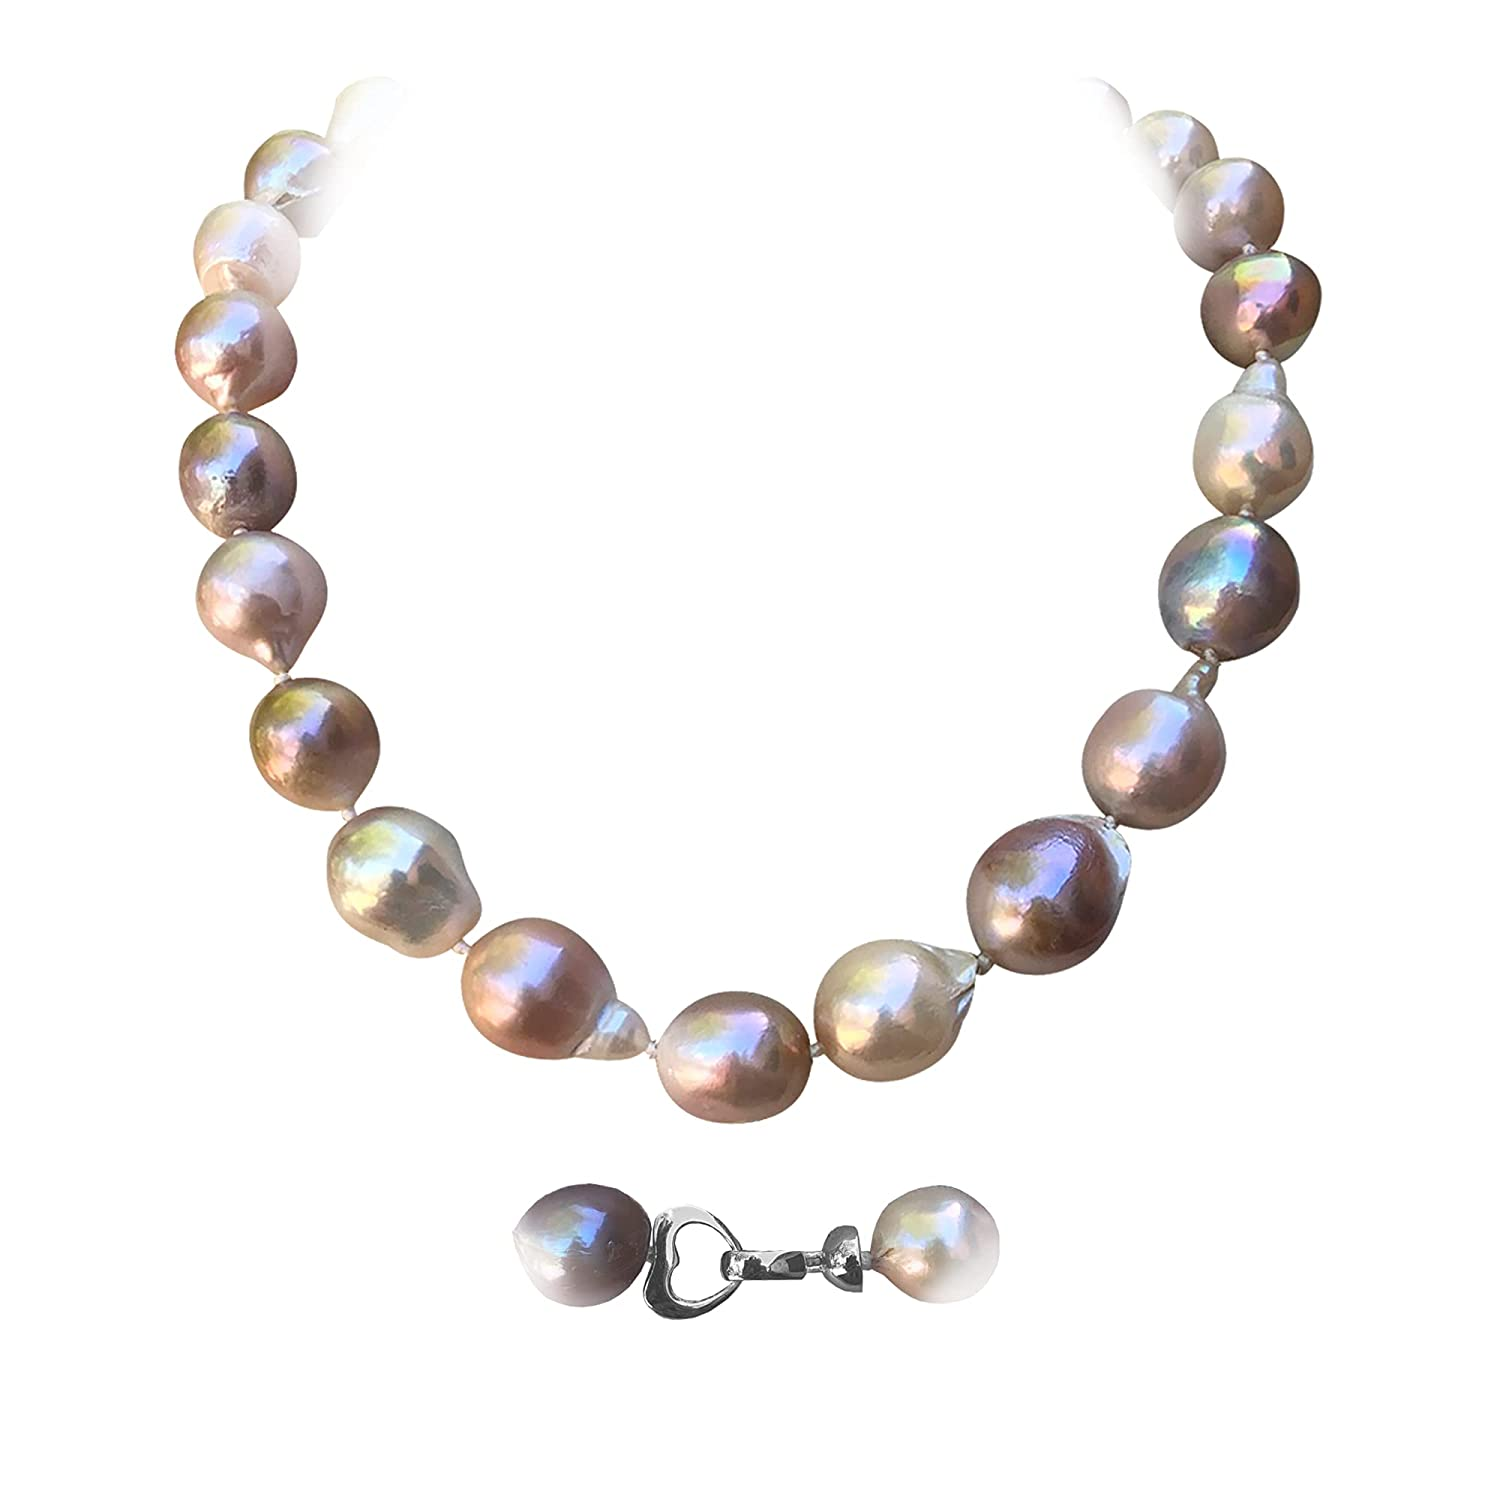 Large Baroque Cultured Pearls Multi-co Necklace 15-25MM Natural Manufacturer Cheap mail order specialty store direct delivery